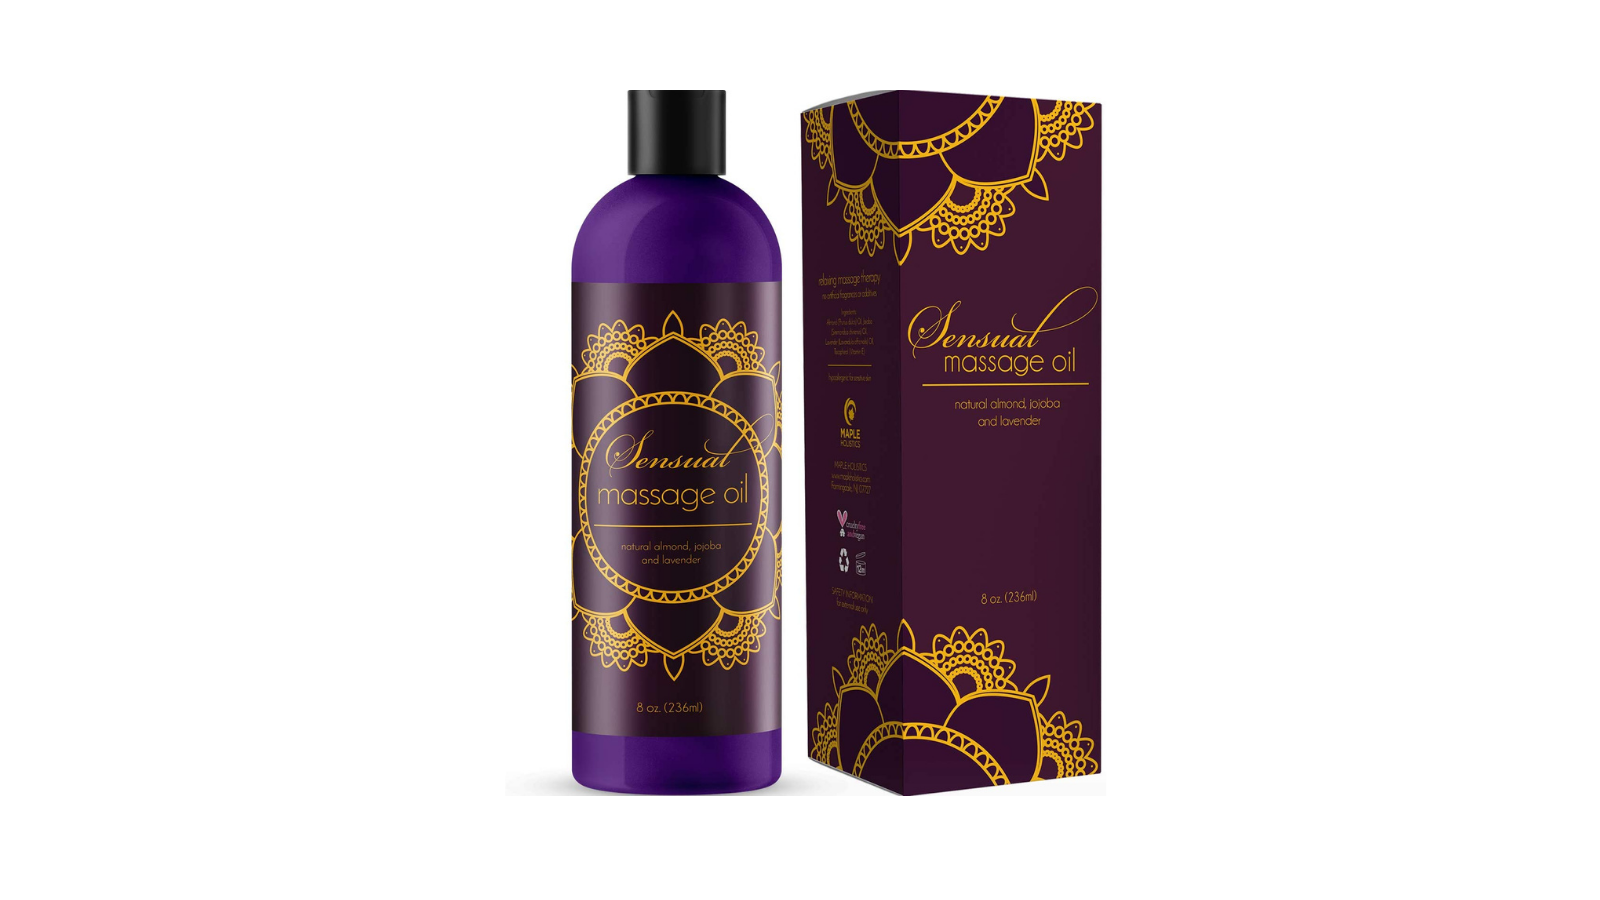 Sensual massage oil with lavender notes in purple packaging.